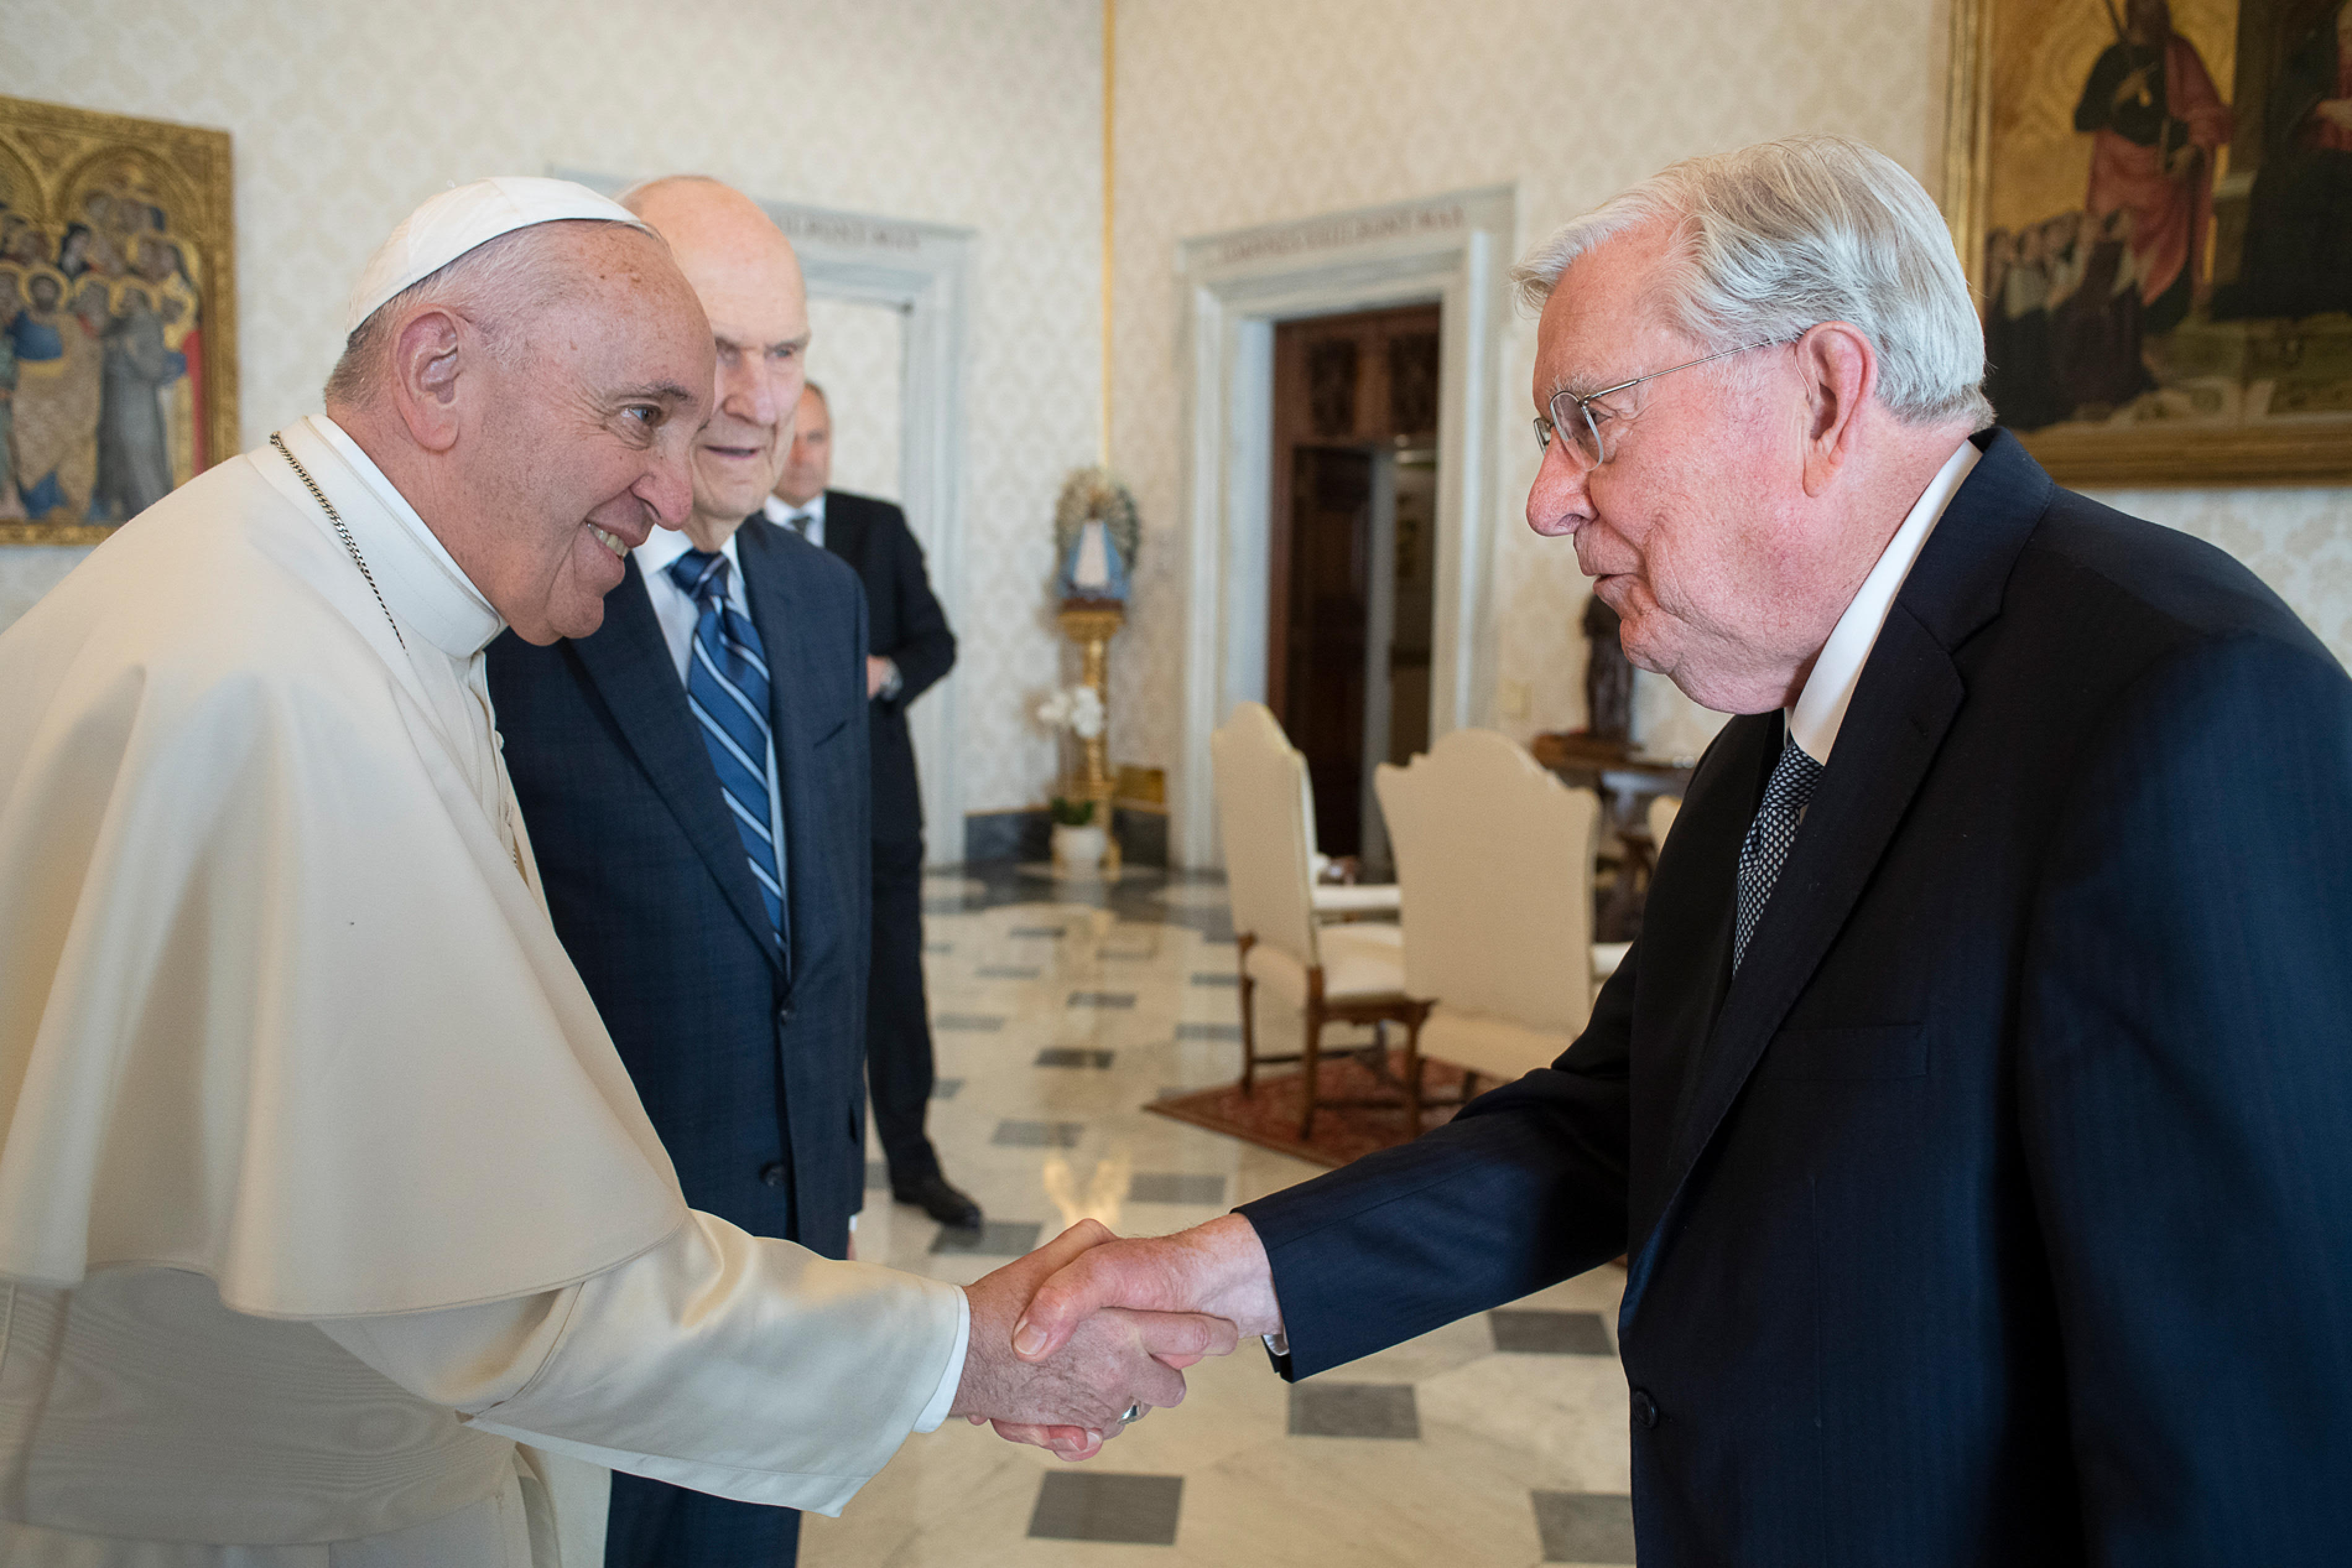 President Russell M. Nelson of The Church of Jesus Christ of Latter-day Saints and President M. Russell Ballard, acting president of the Quorum of the Twelve Apostles, meet with Pope Francis at the Vatican in Rome, Italy, on Saturday, March 9, 2019.